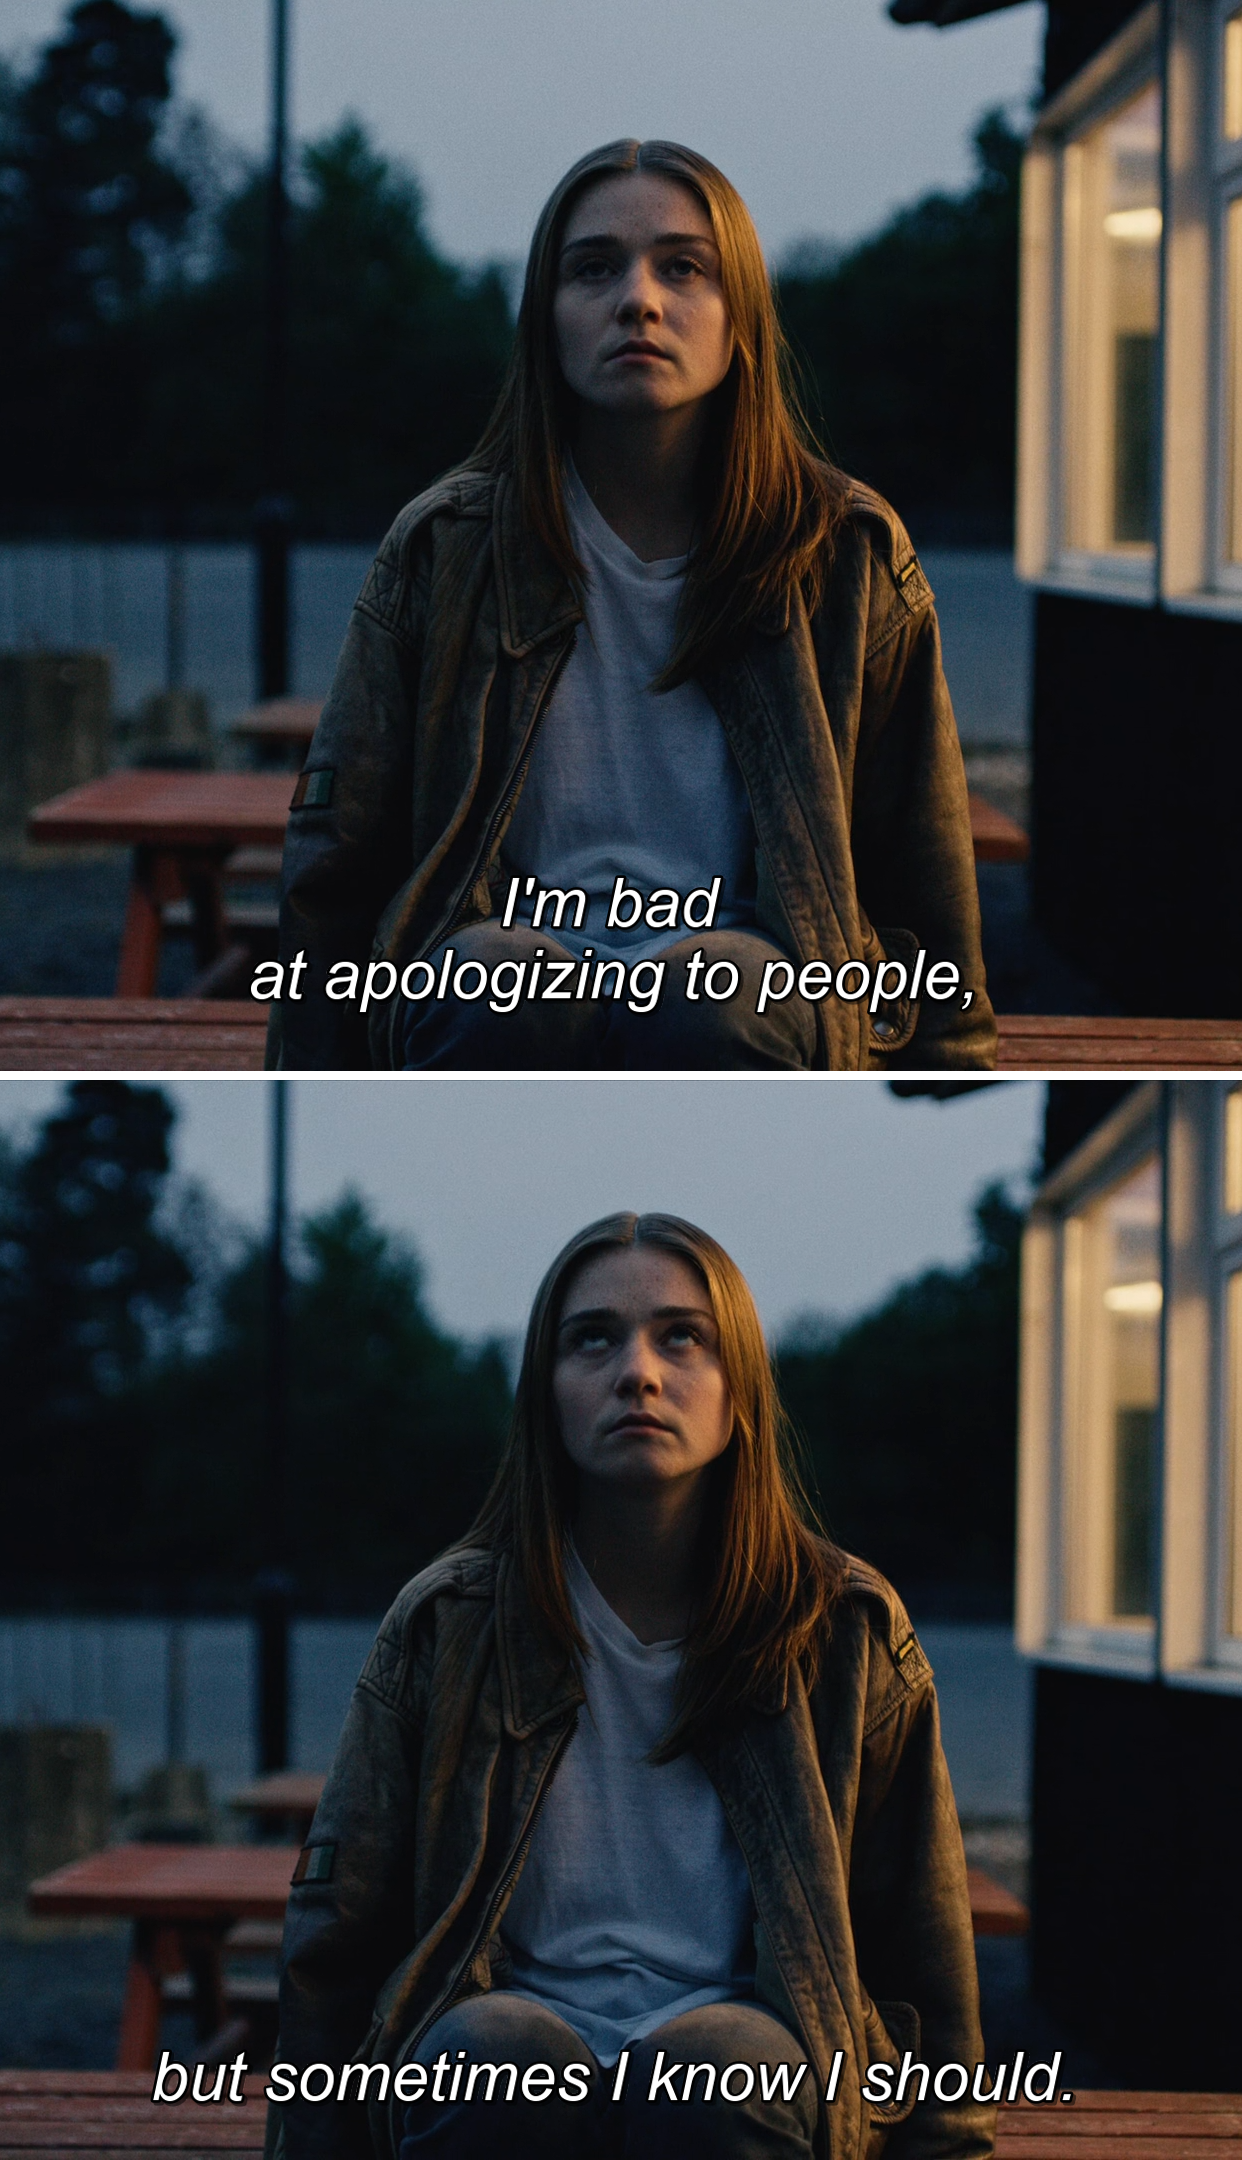 Pin By 25101998 On Teotfw In 2020 Movie Quotes Movies Film Quotes